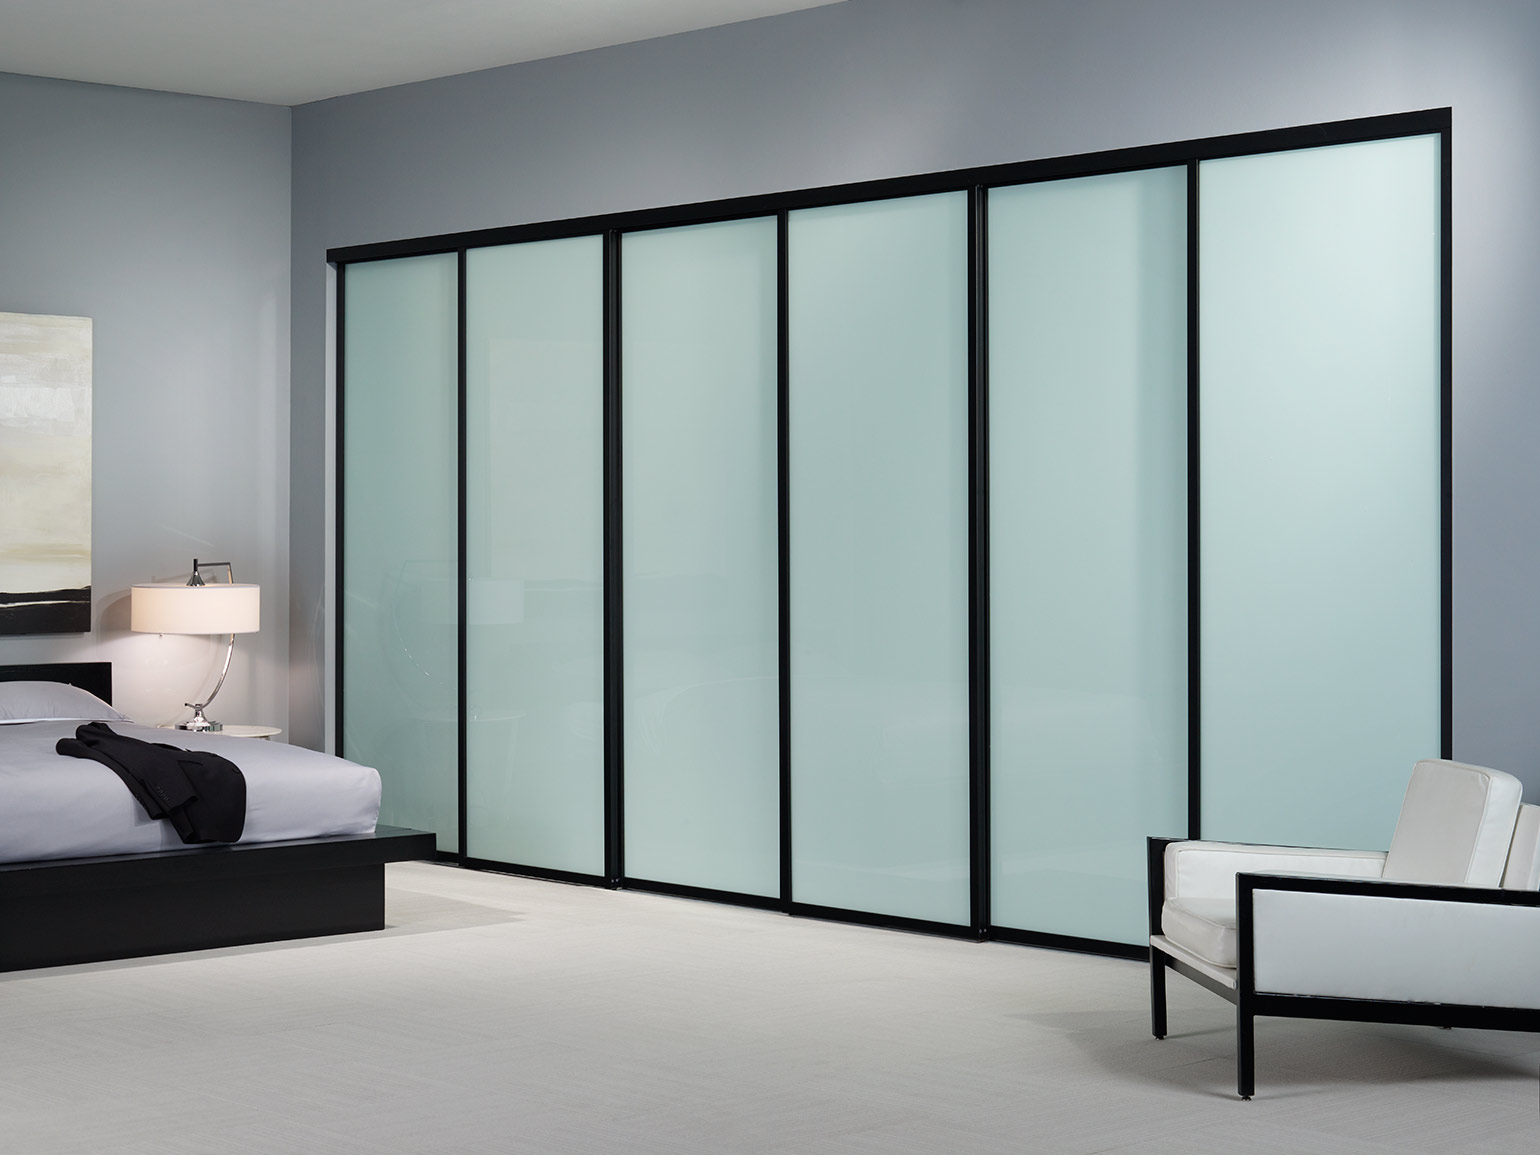 Excellent frosted glass closet doors large sliding glass closet doors. view larger more details emeutcb